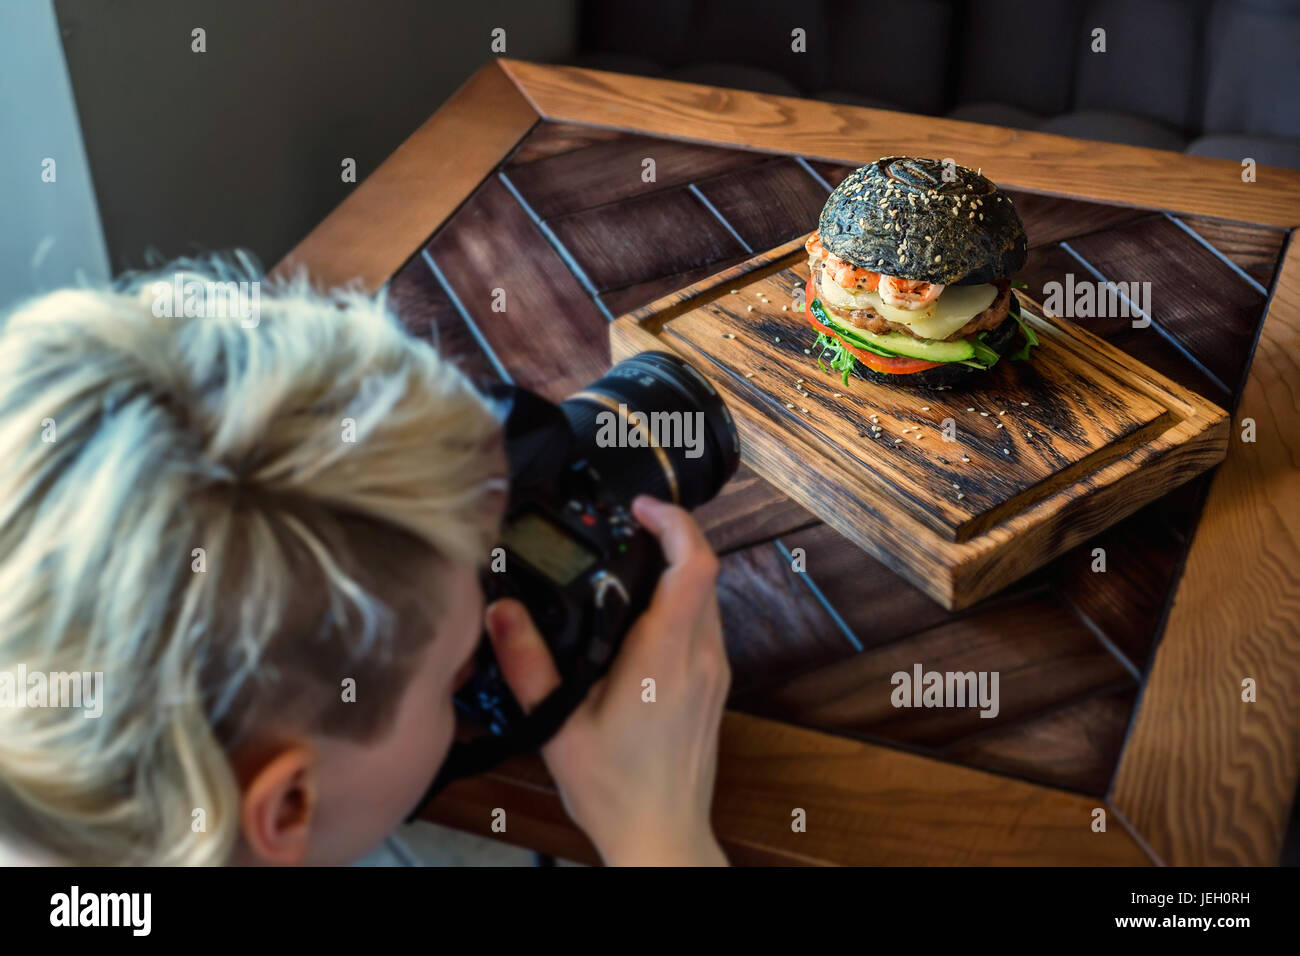 Occupation of food photographer - Stock Image